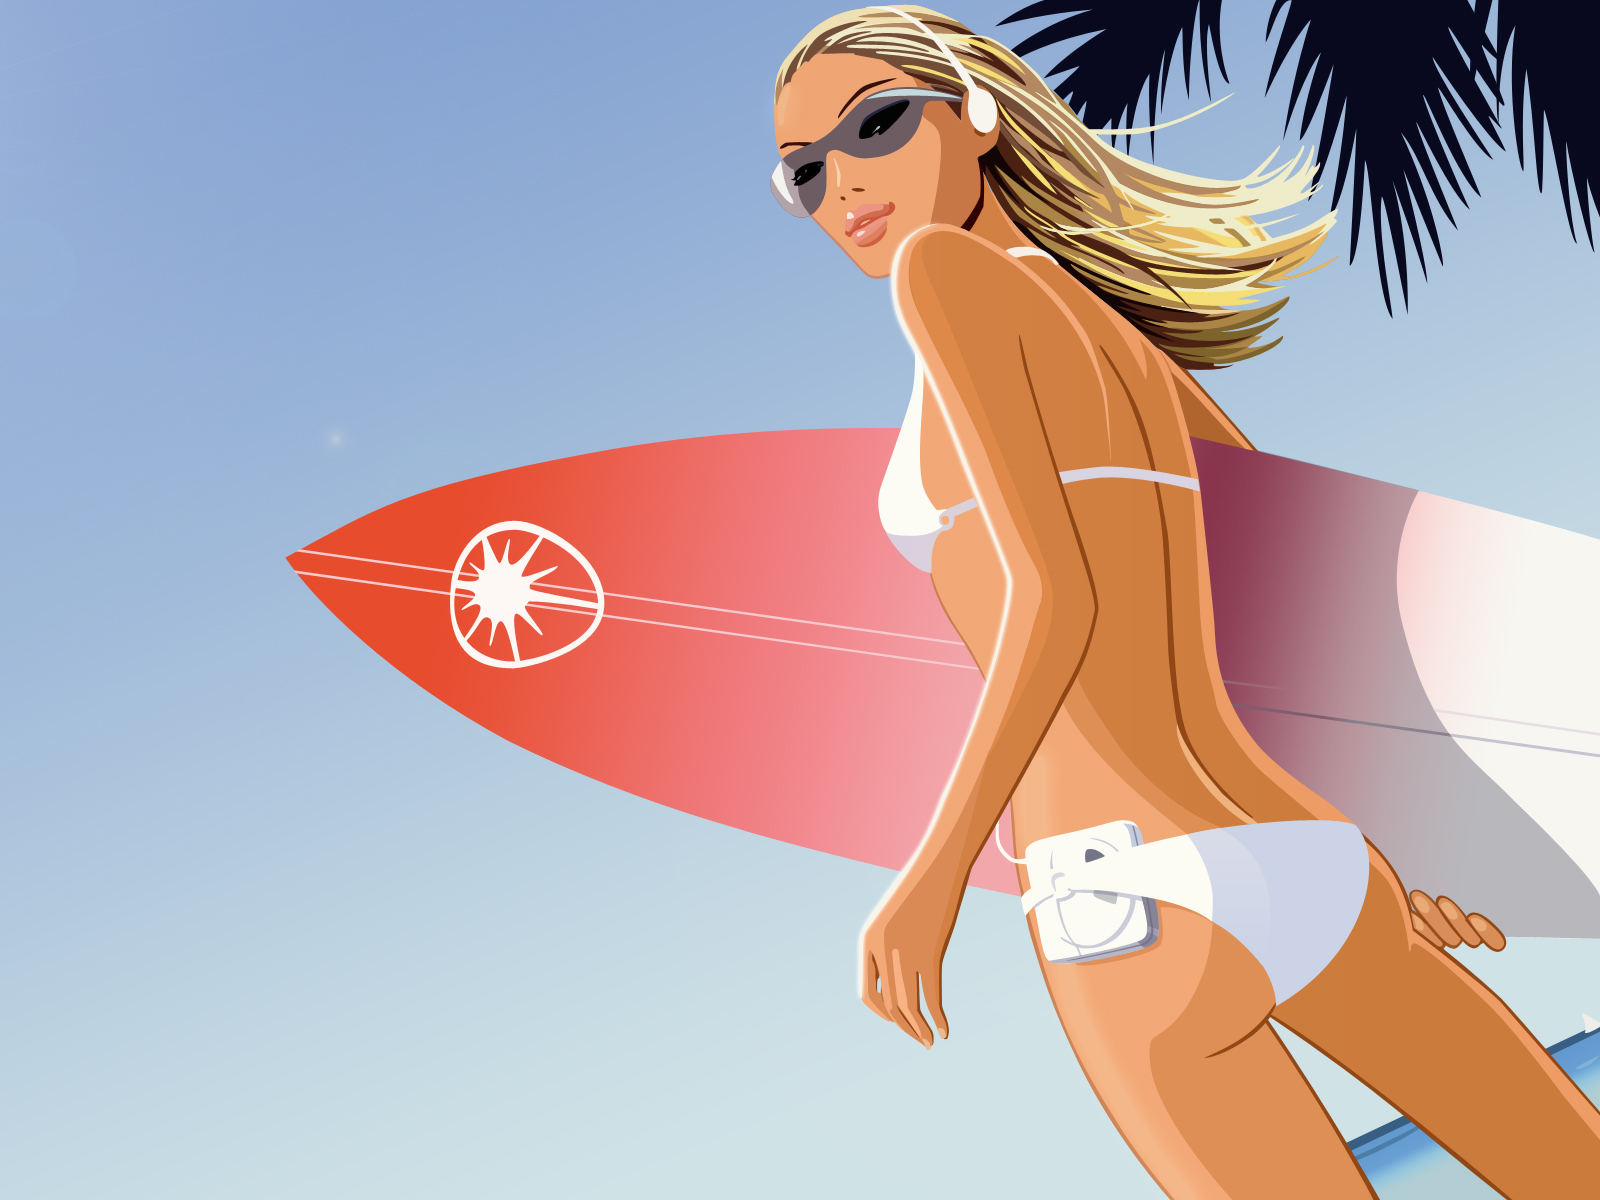 1600x1200 Surf chick desktop wallpapers and stock photos